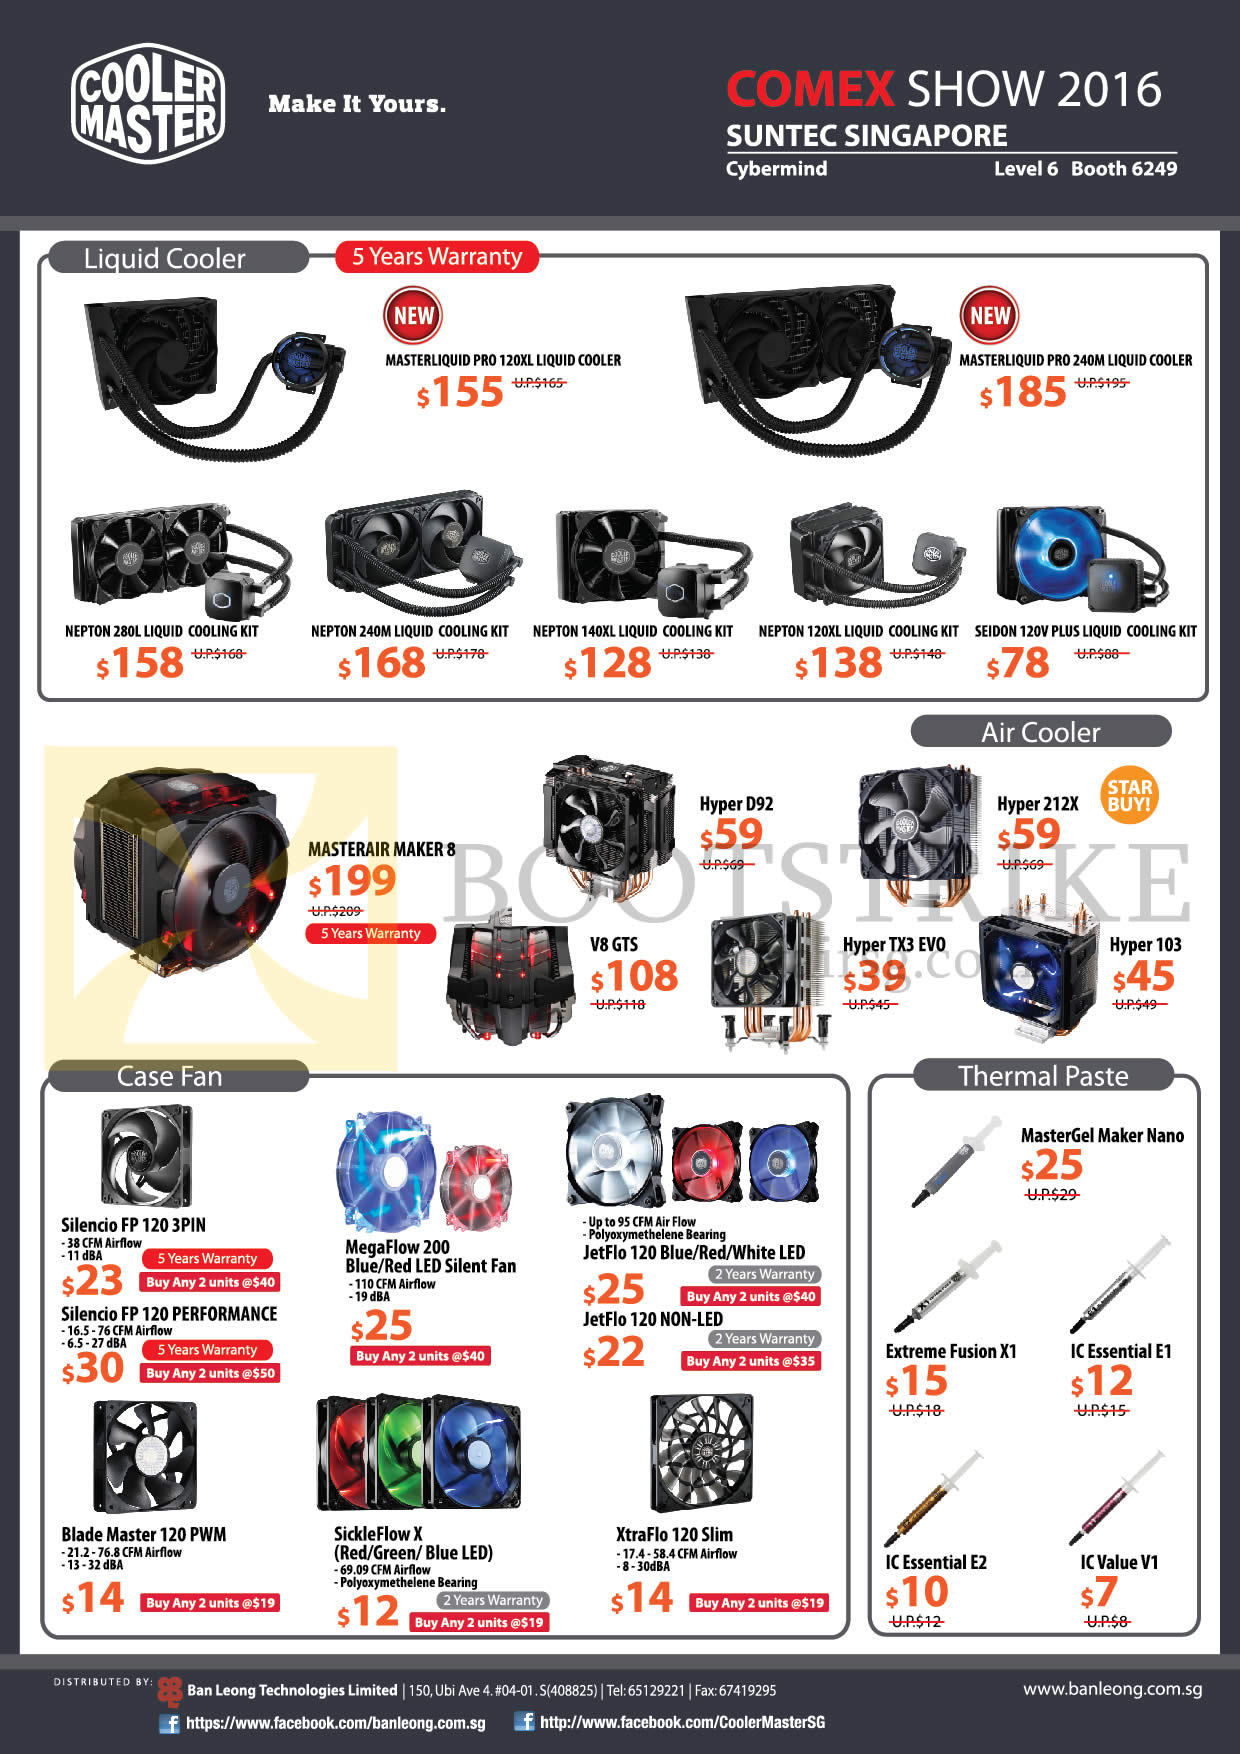 COMEX 2016 price list image brochure of Cybermind Cooler Master Accessories Liquid Coolers, Air Coolers, Case Fans, Thermal Pastes, Masterliquid 120XL, Nepton 280L, 240M, MasterAir, Hyper D92, V8 GTS, Hyper TX3 Evo